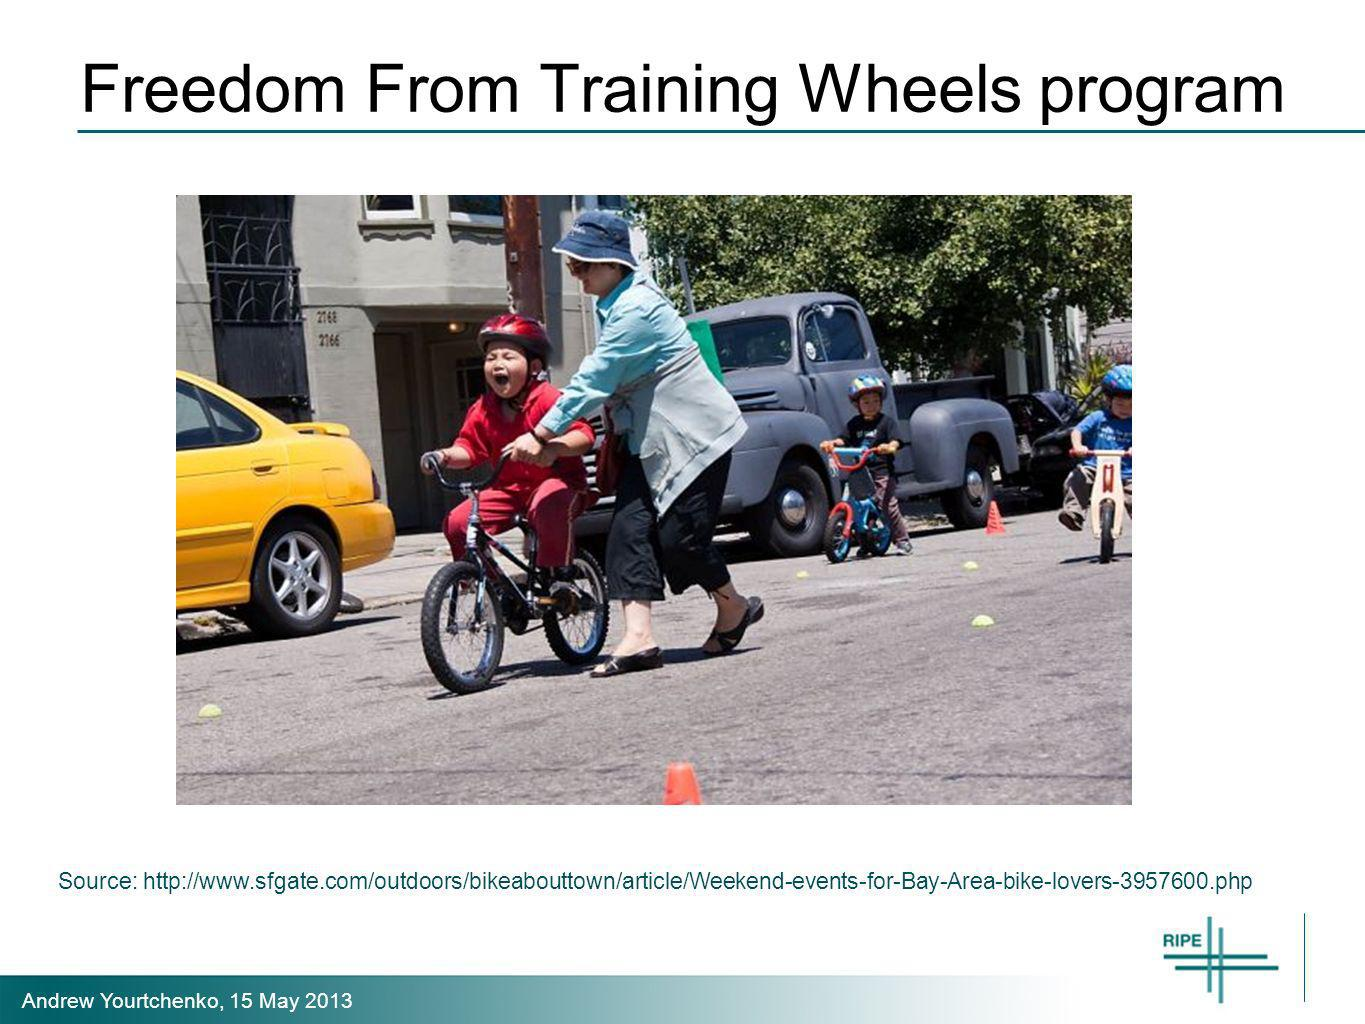 Andrew Yourtchenko, 15 May 2013 Freedom From Training Wheels program Source: http://www.sfgate.com/outdoors/bikeabouttown/article/Weekend-events-for-Bay-Area-bike-lovers-3957600.php